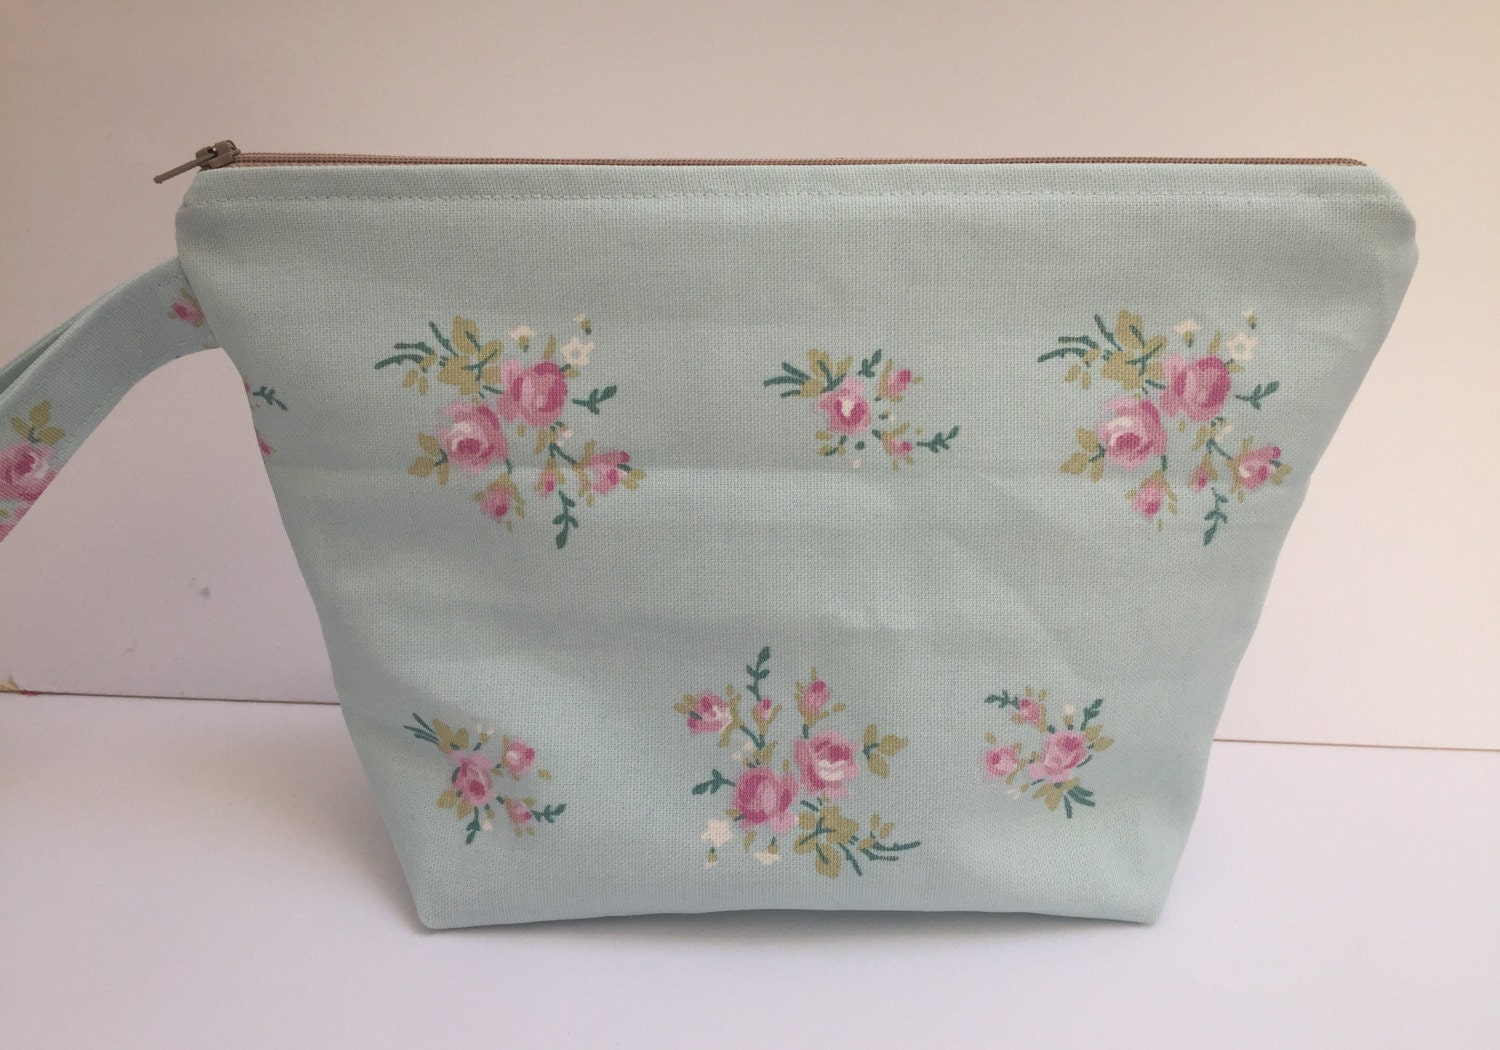 Large Toiletry bag travel bag cosmetics bag made with cotton linen fabric and fully lined with water resistant fabric